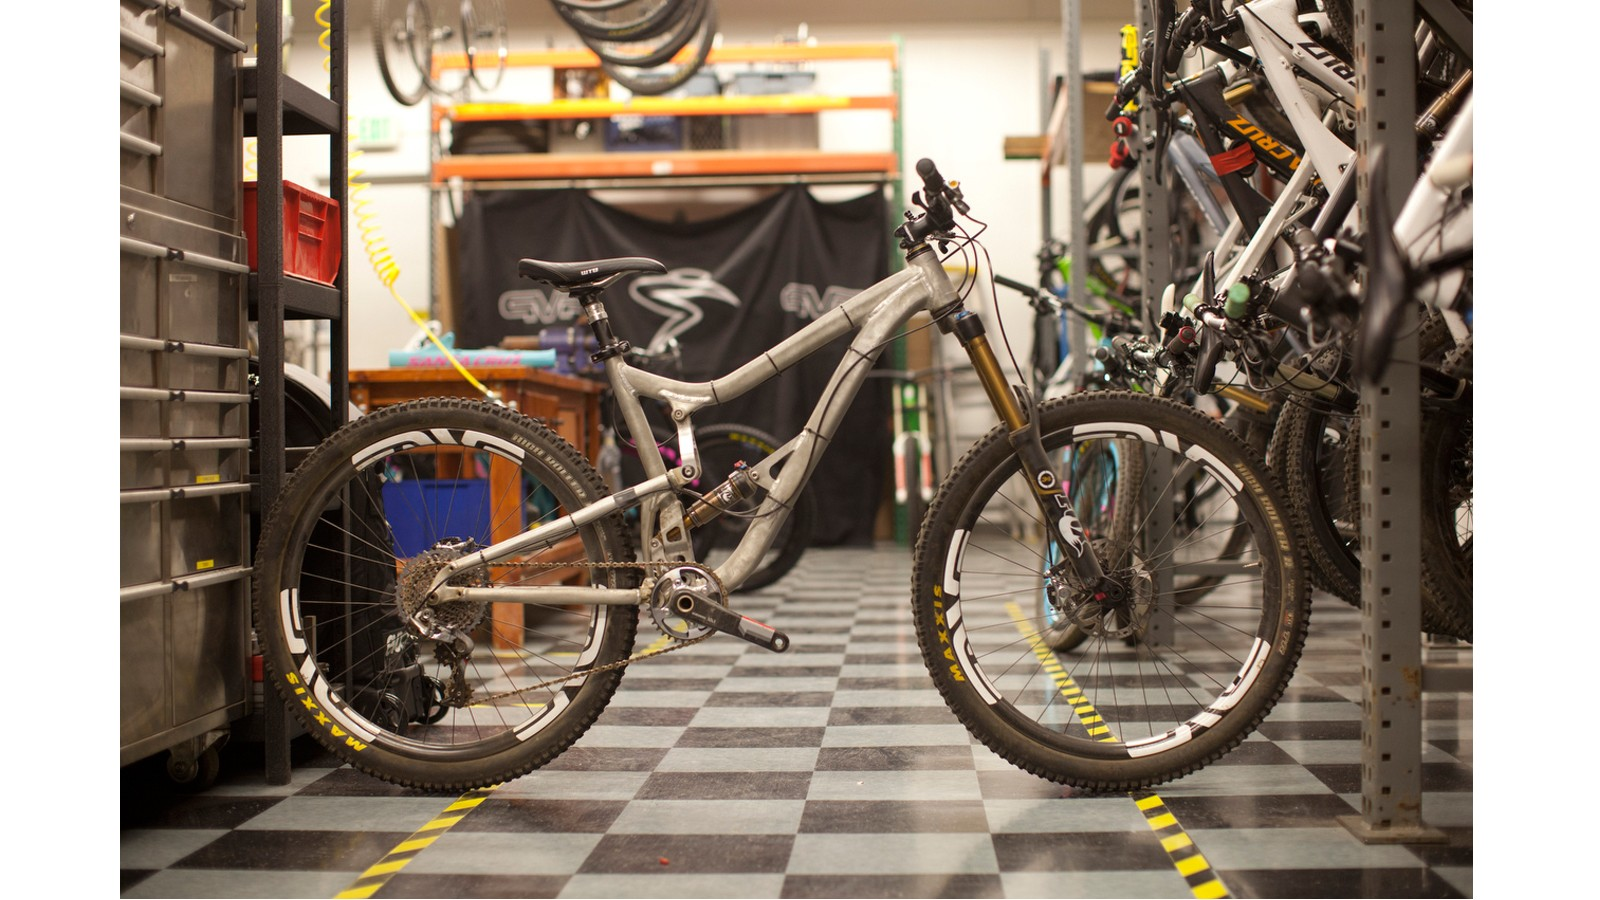 Santa Cruz experimented with many different designs in the process of revamping the Nomad